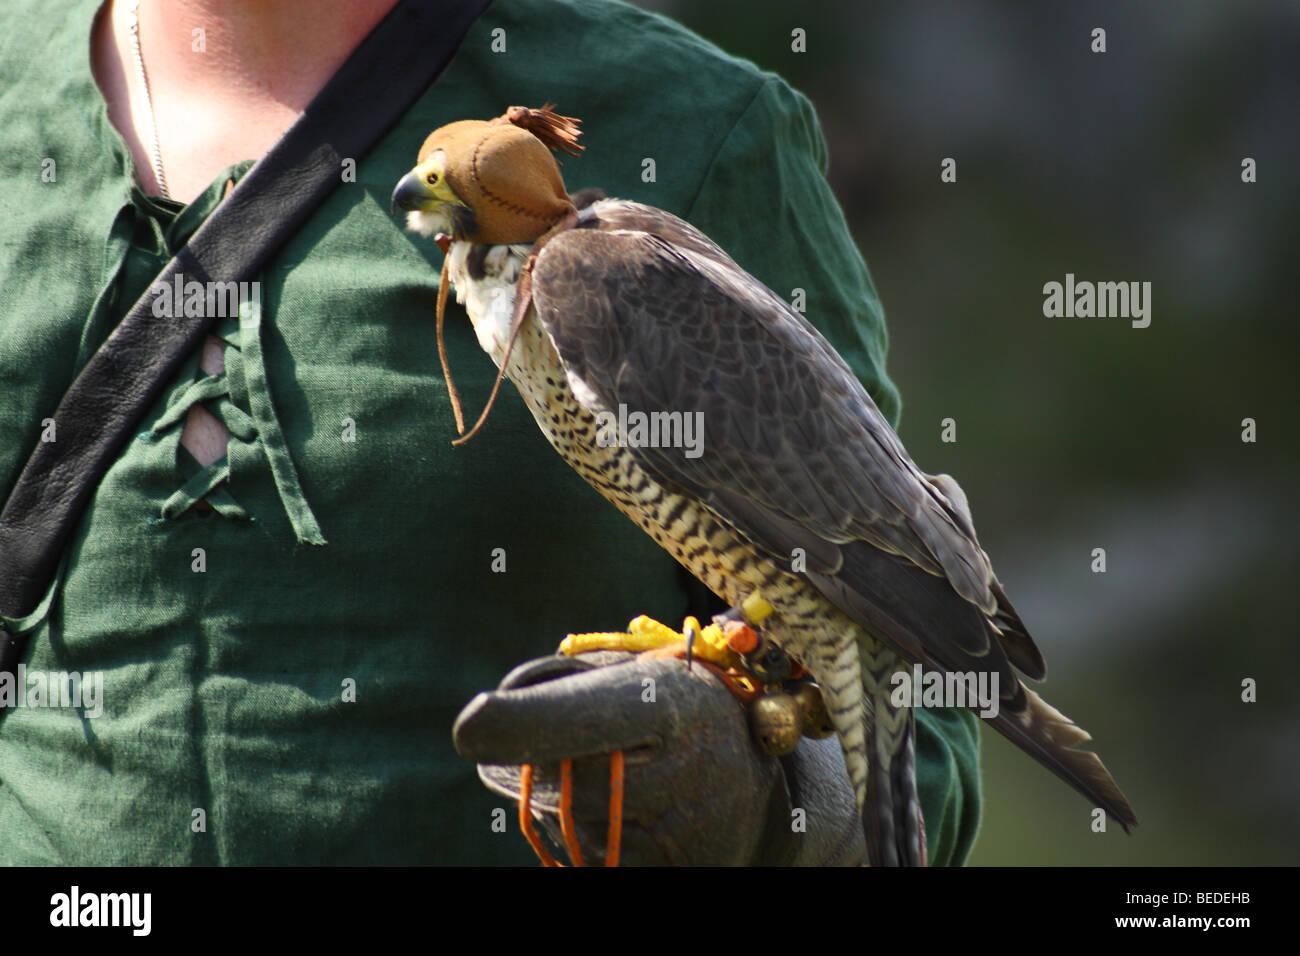 Falconer with Falcon - Stock Image